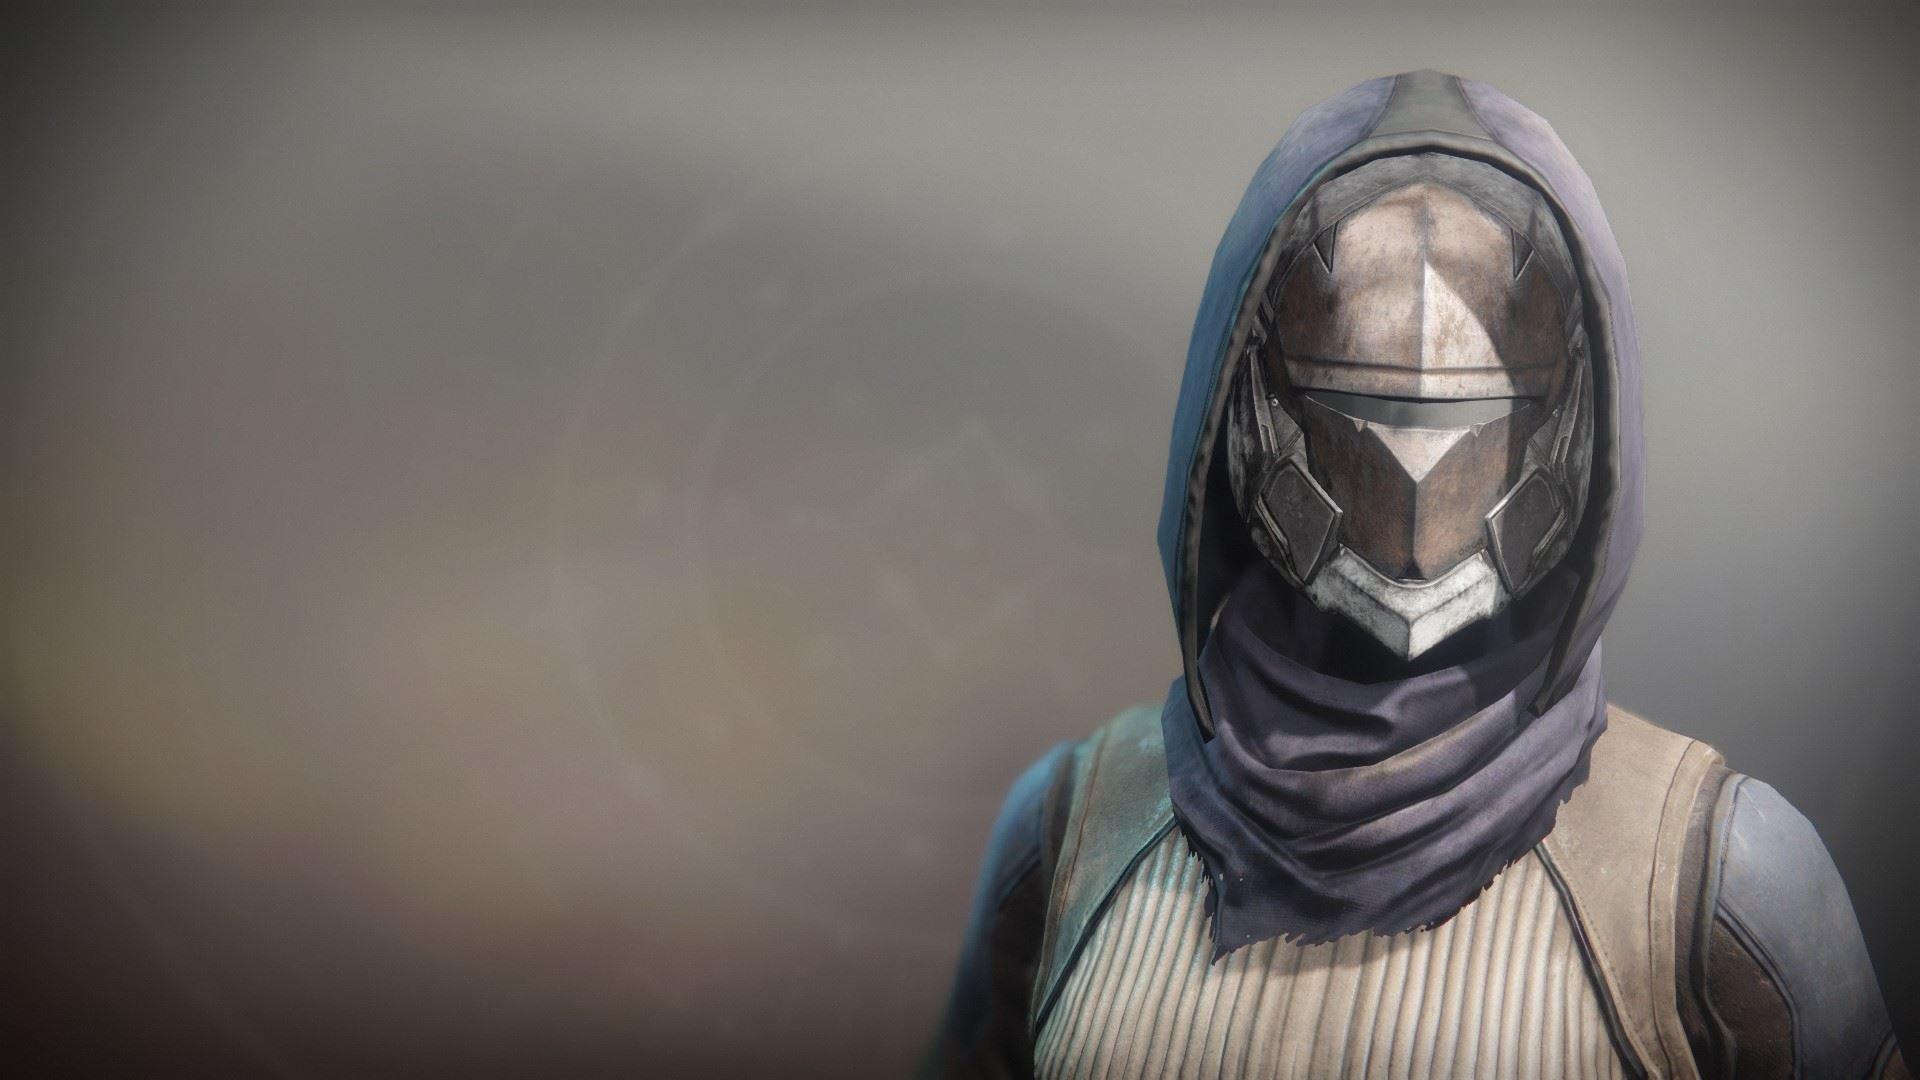 An in-game render of the Solstice Mask (Rekindled).